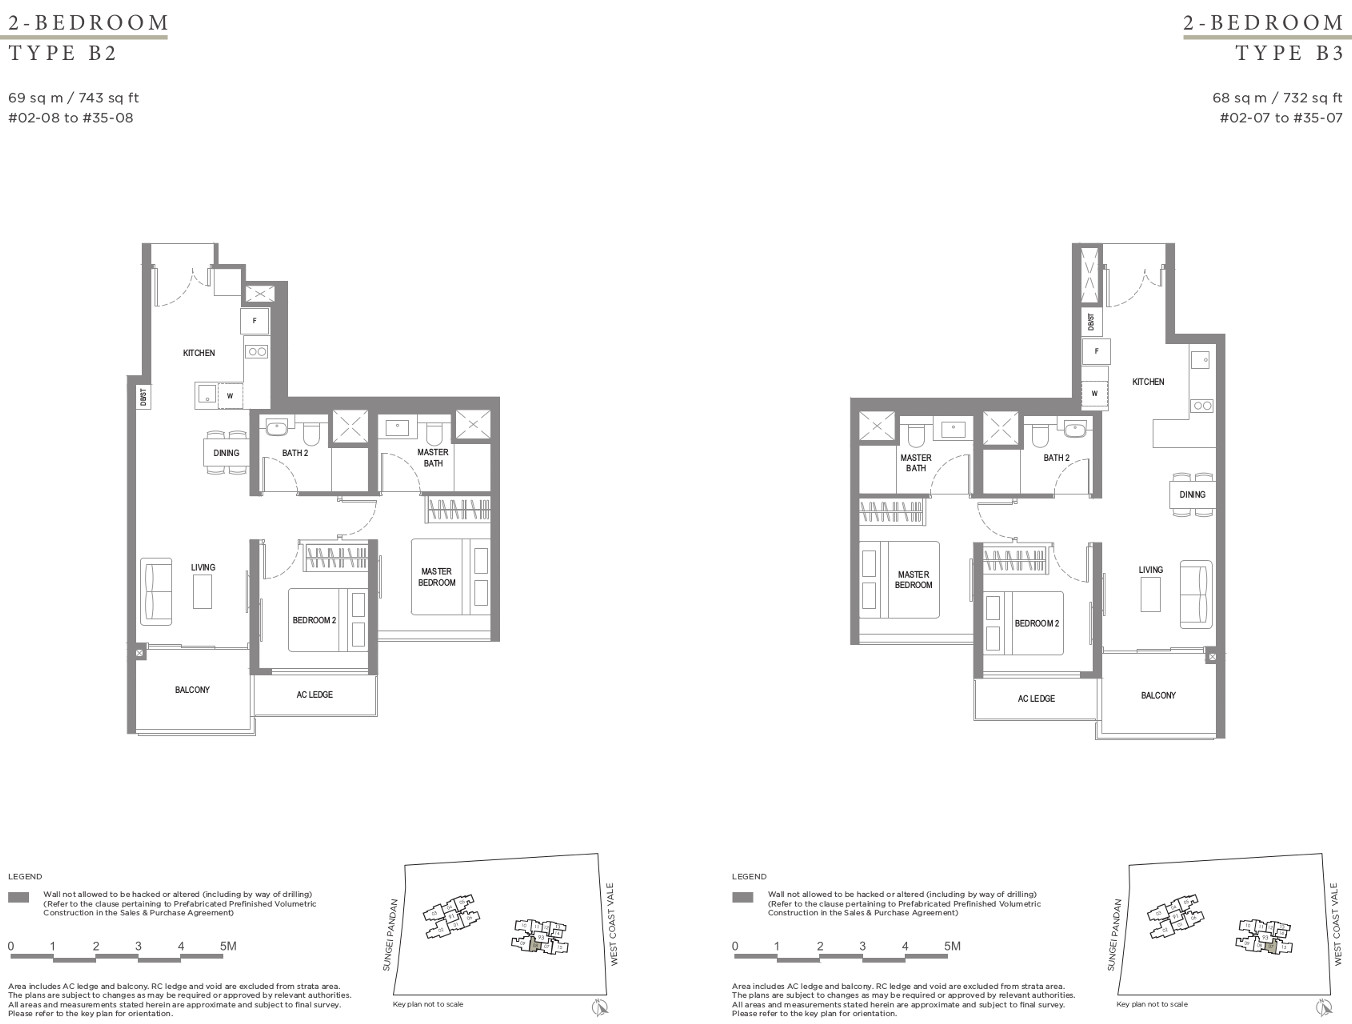 Twin VEW Floor Plan 2 Bedroom Types B2 & B3